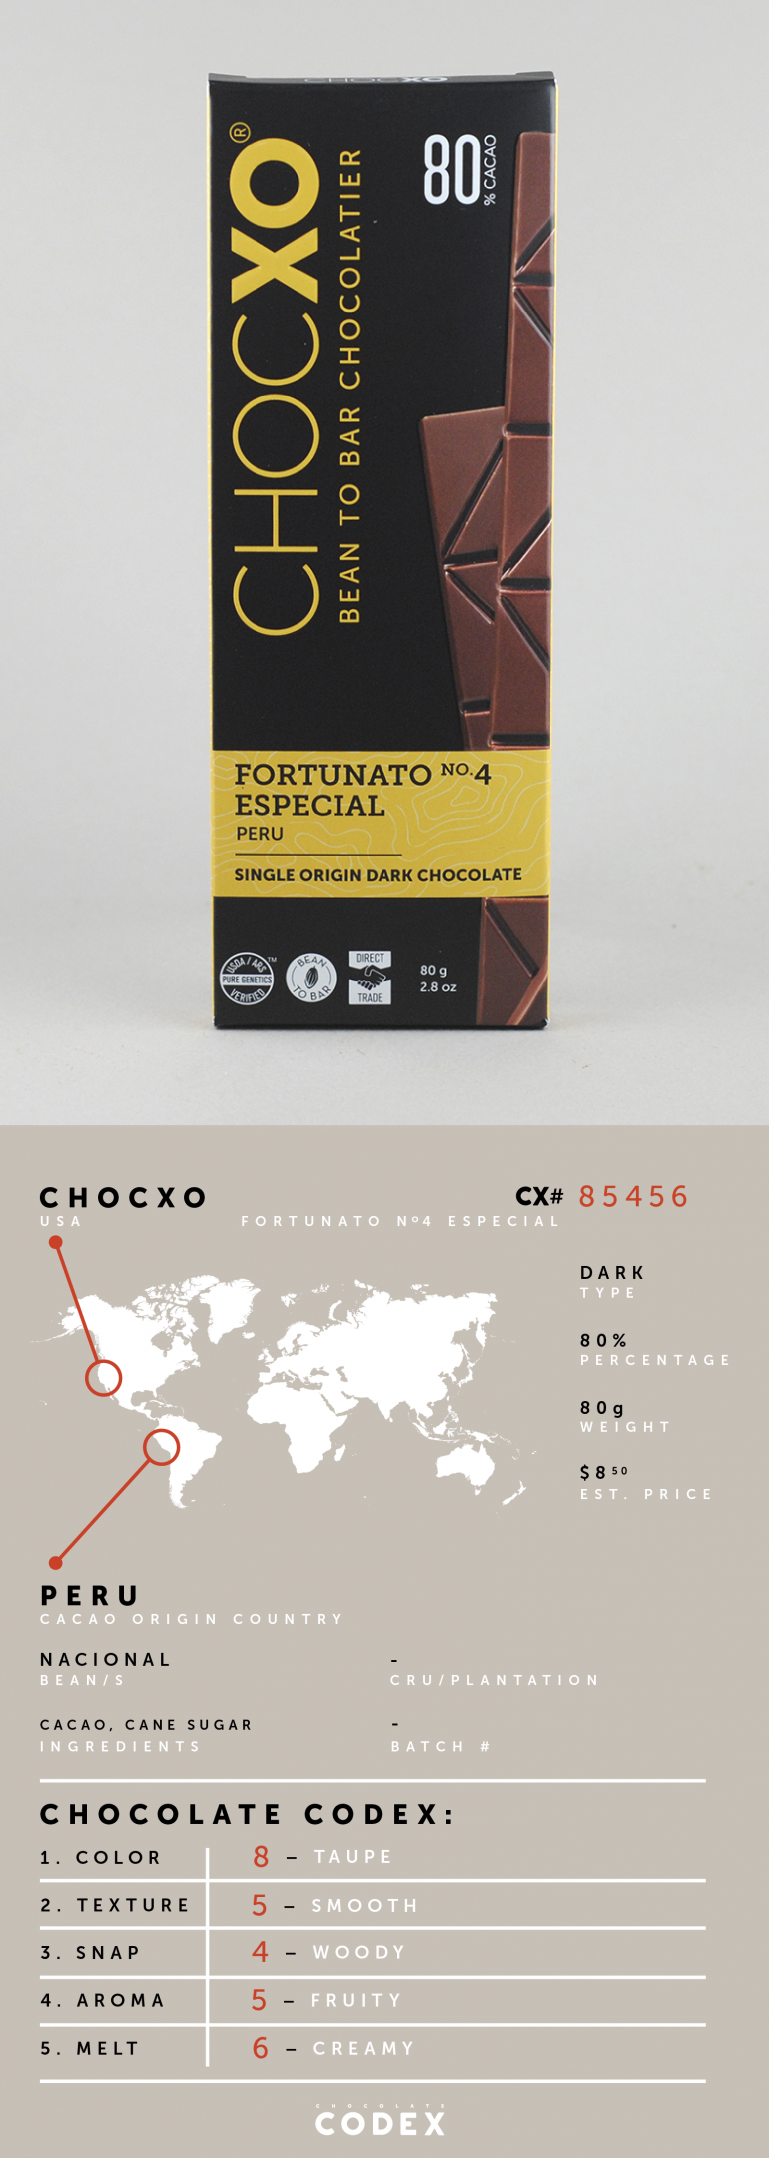 ChocolateCodex_ChocXO_Fortunado_Peru_80%